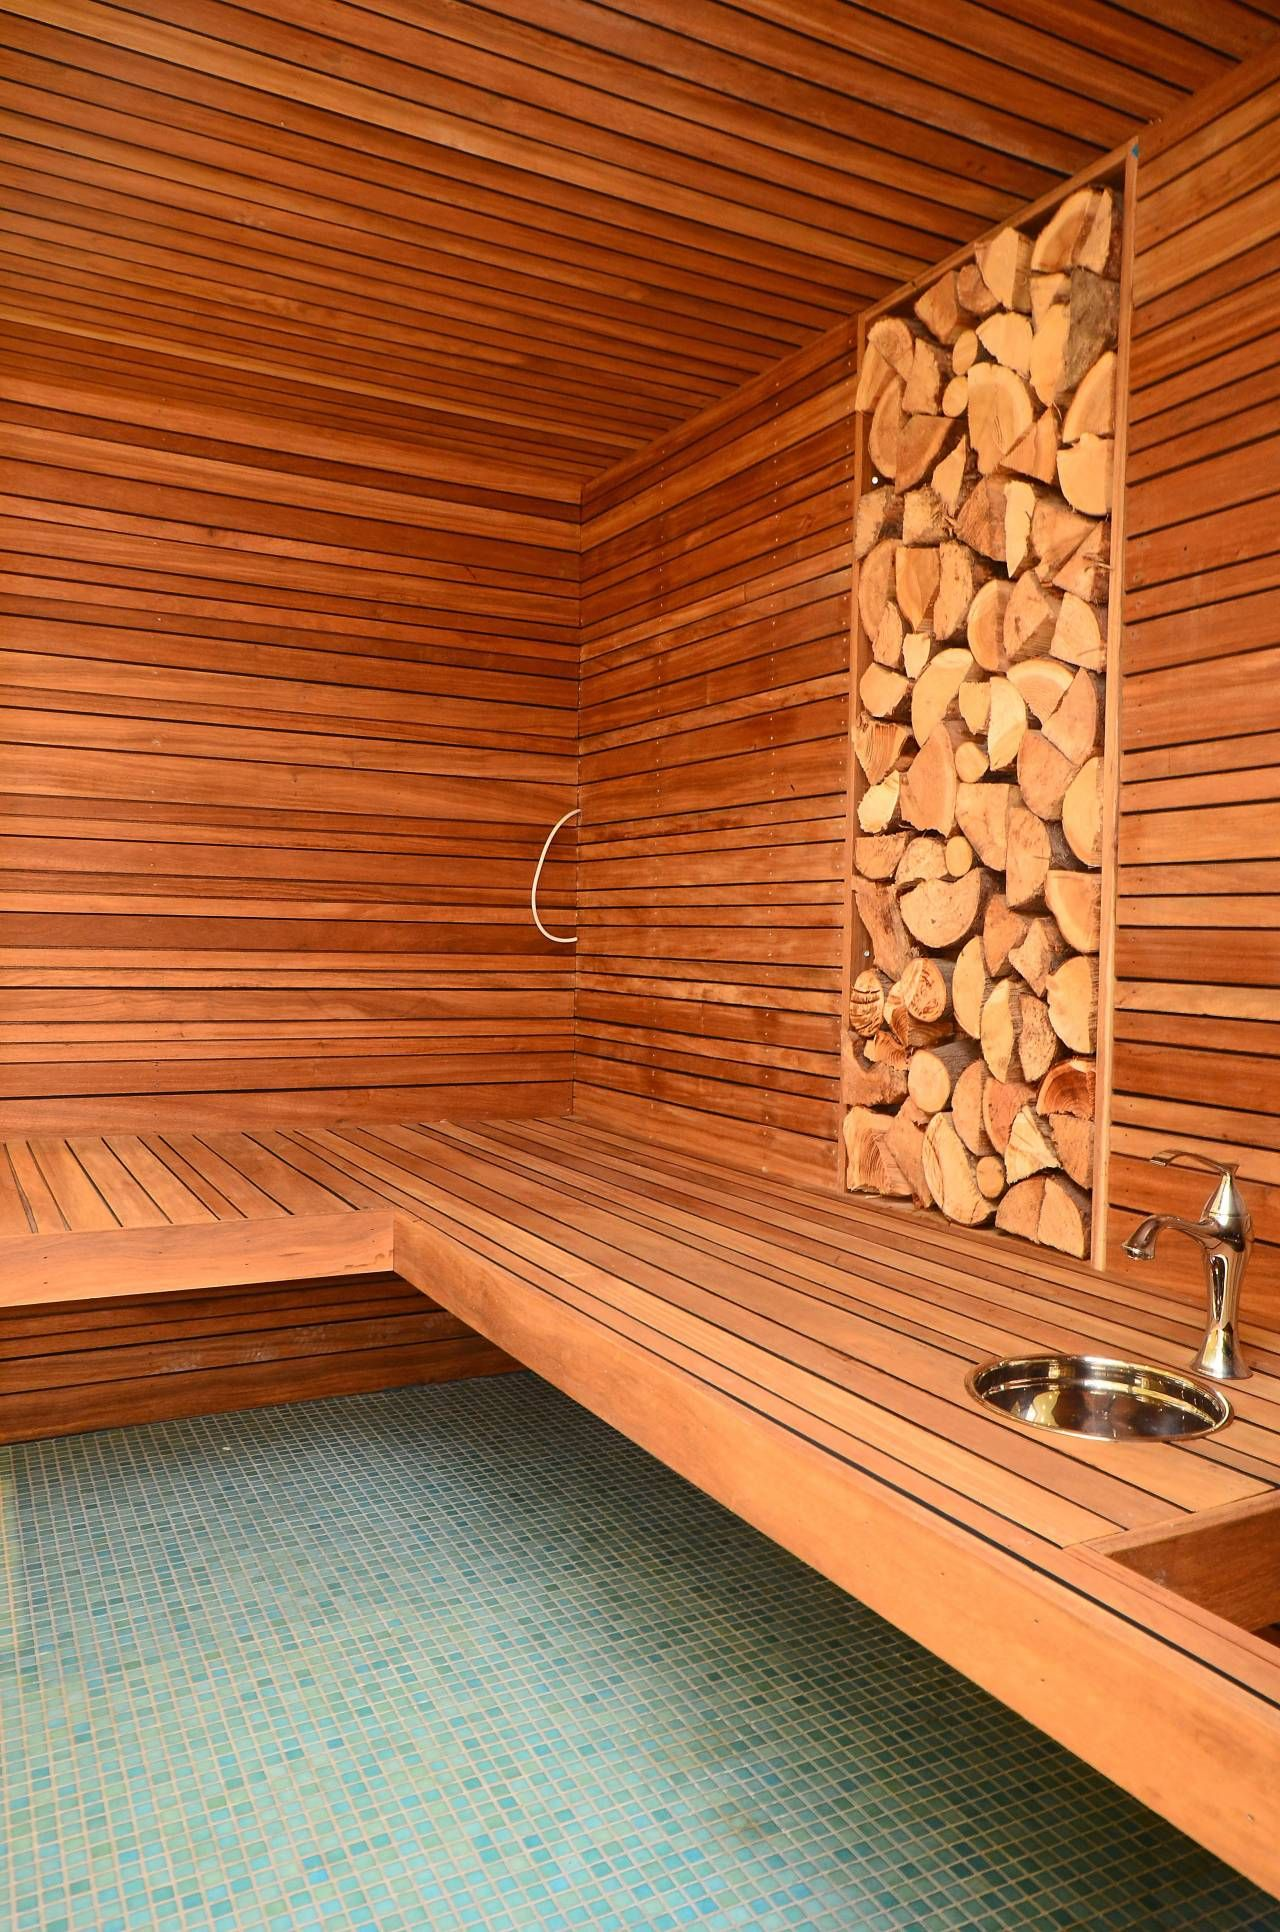 diy sauna sauna spa pinterest saunas diy sauna and spa. Black Bedroom Furniture Sets. Home Design Ideas